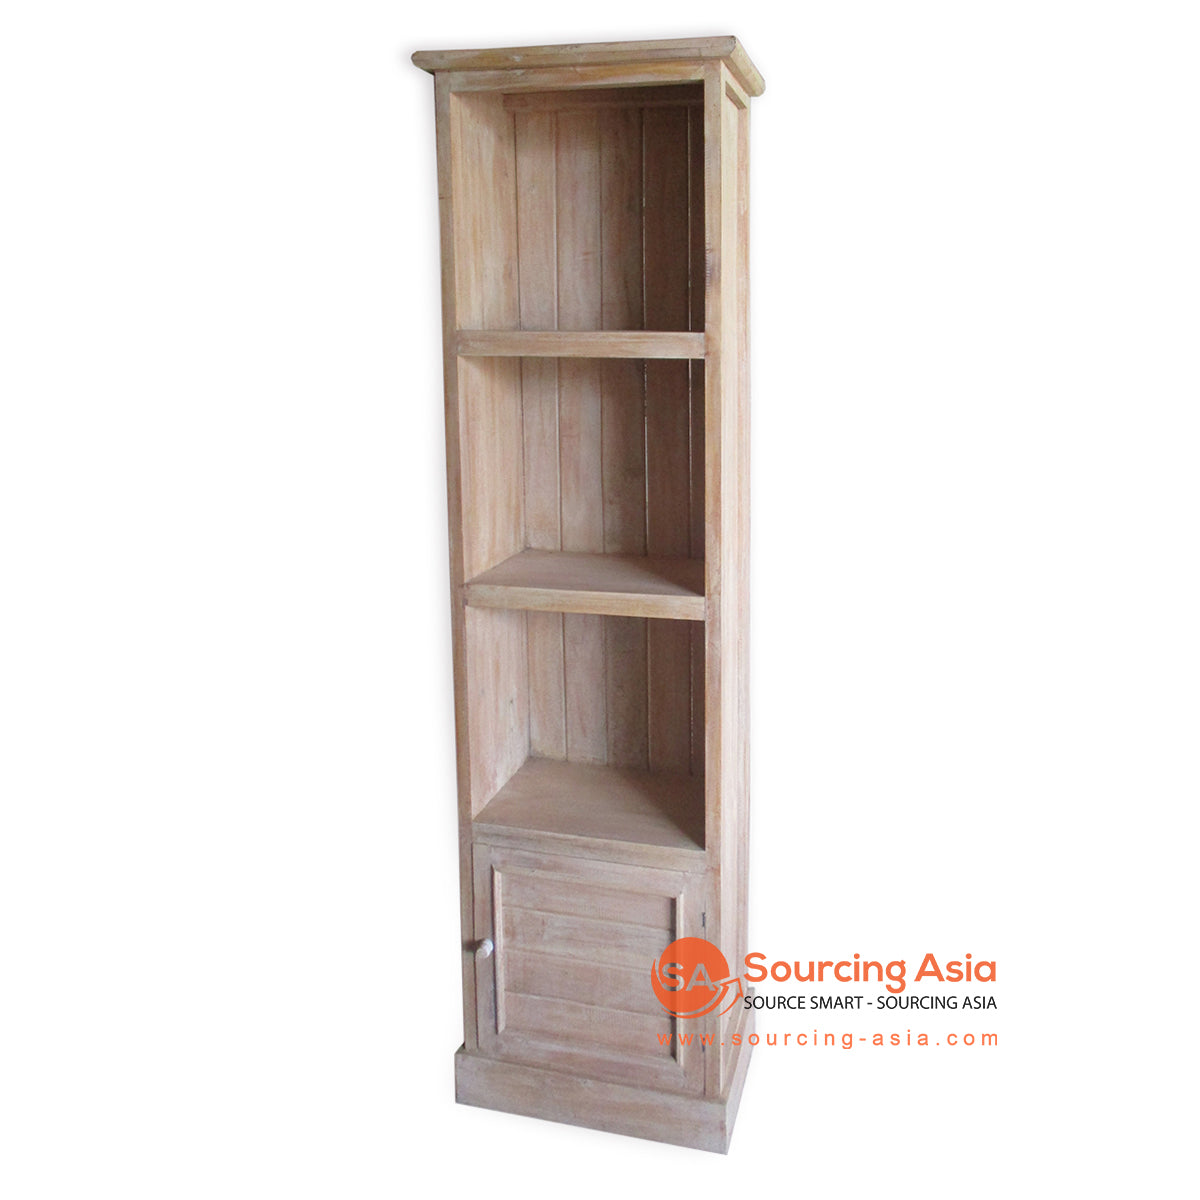 THE141BW BOOK RACK WITH 1 DRAWER BROWN WASH